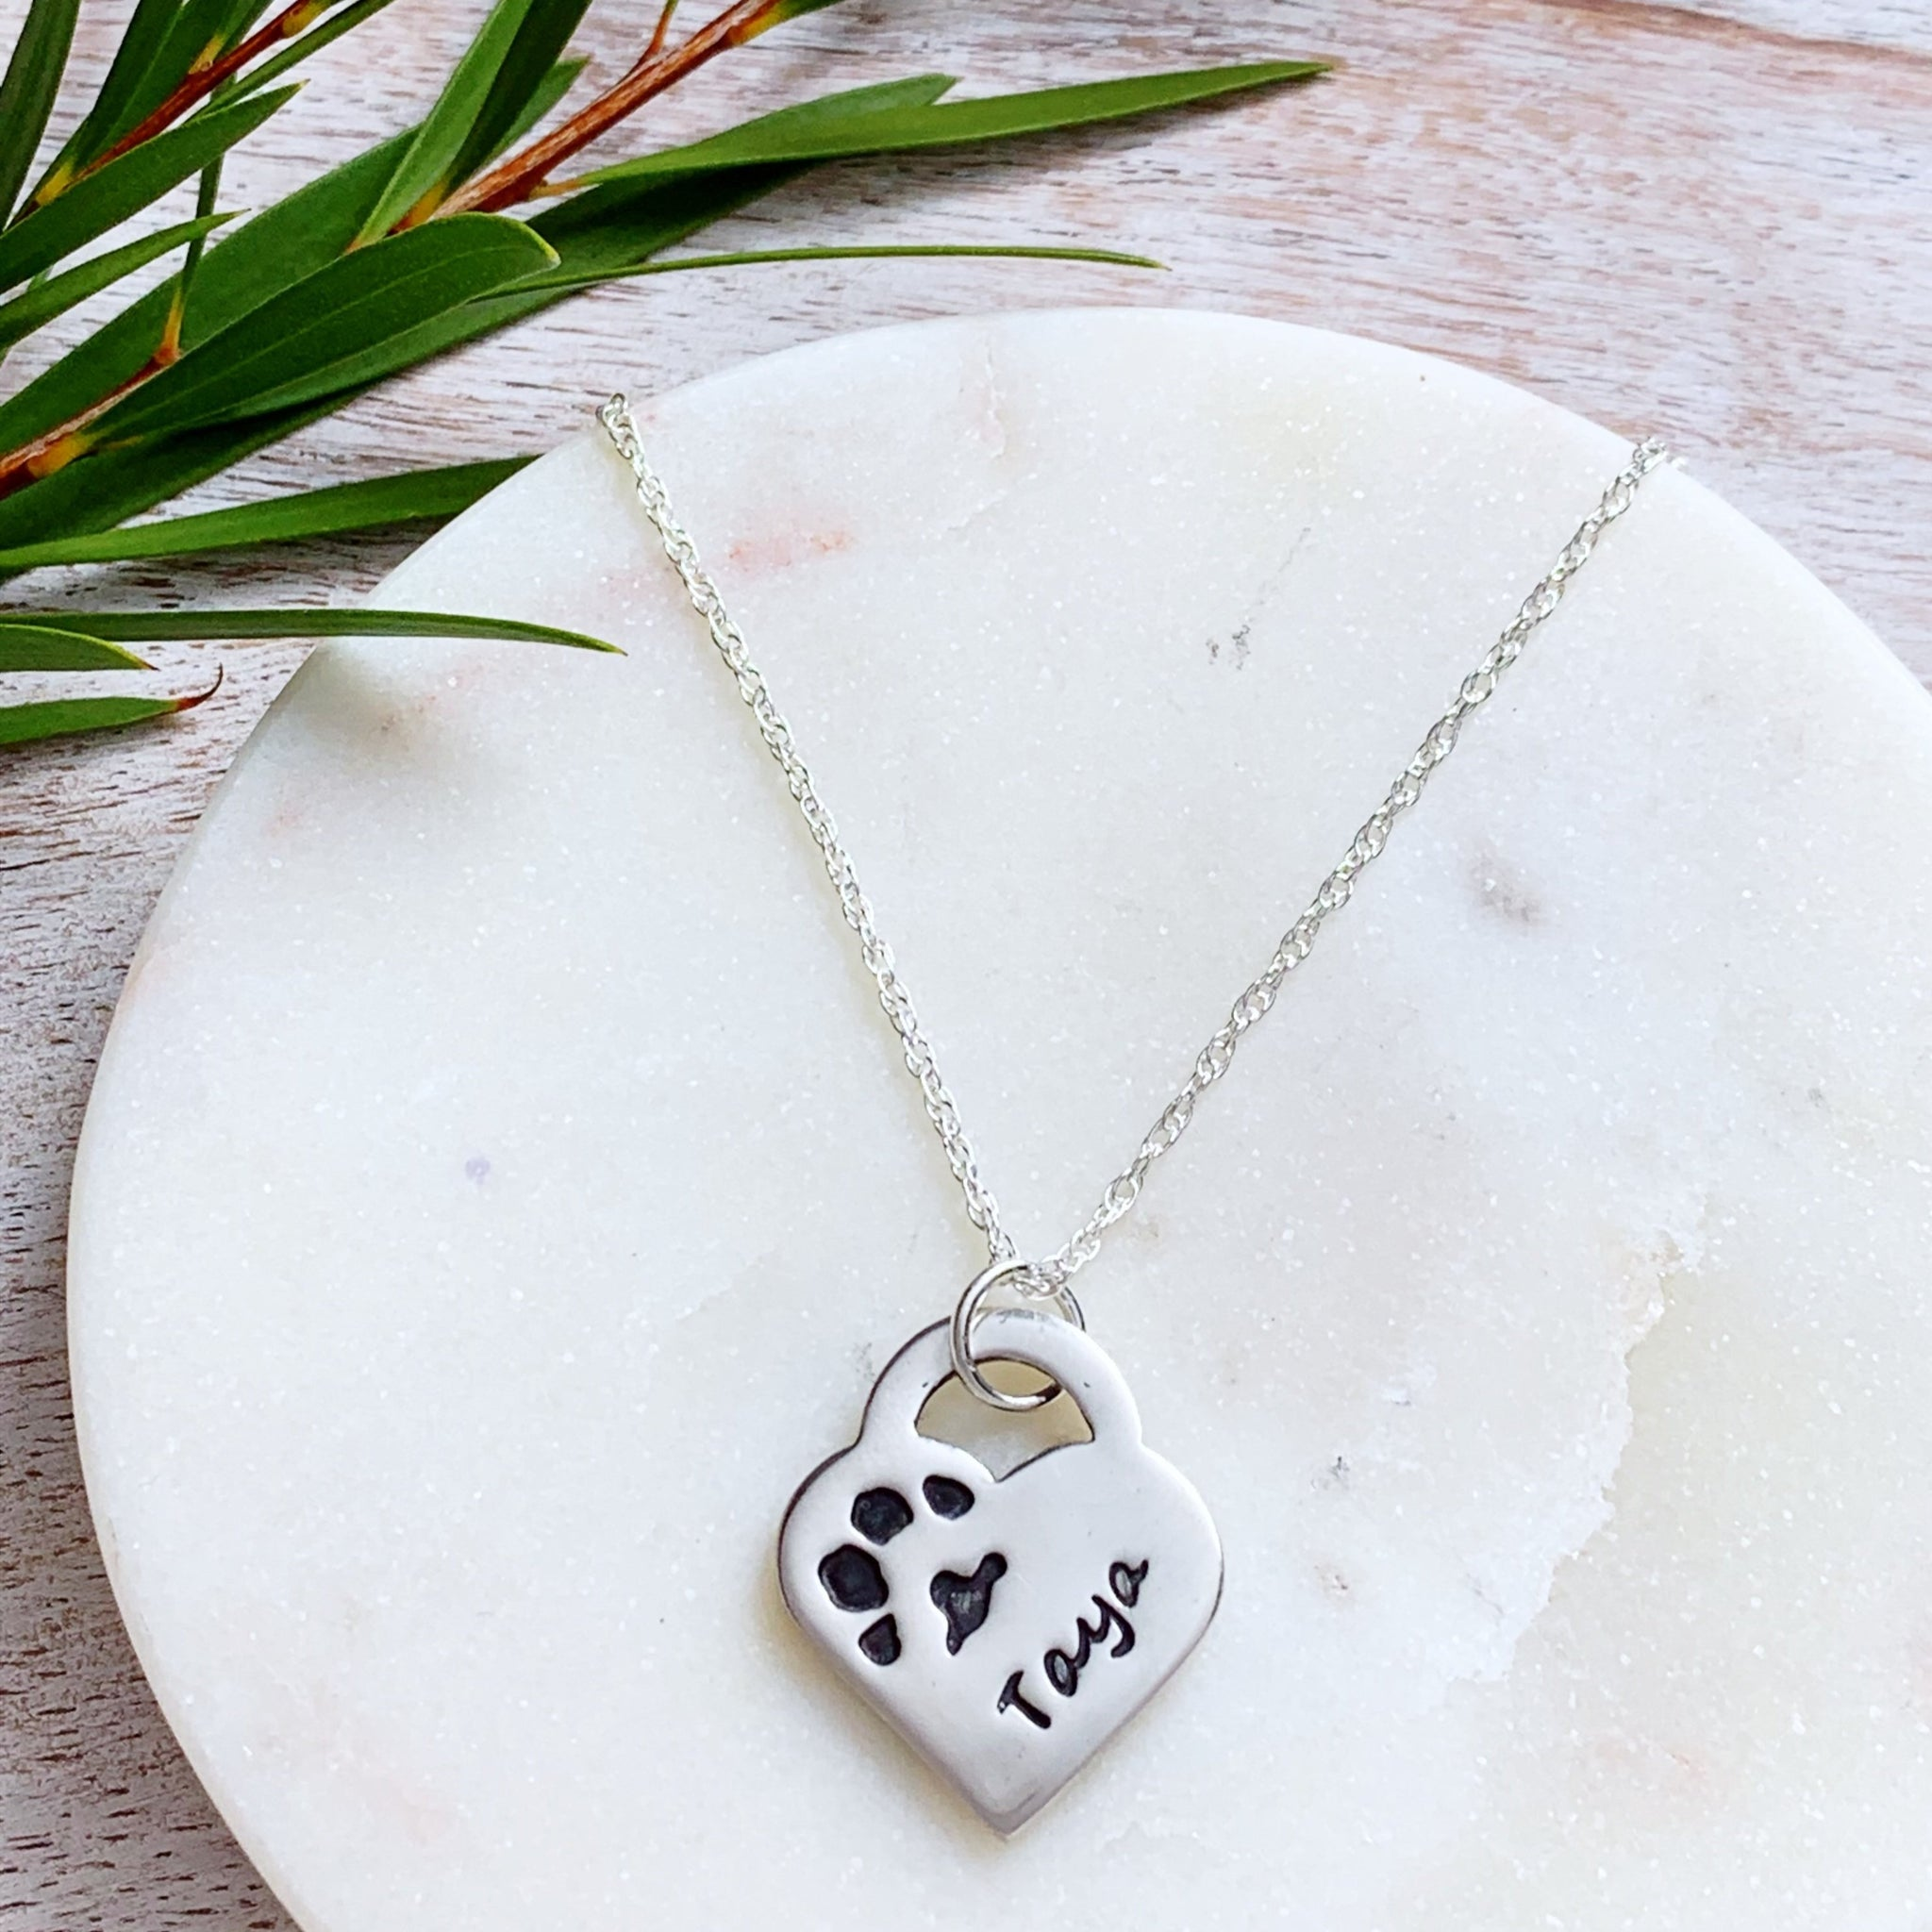 Paw Print Necklace (Lock Heart) - Silver Magpie Fingerprint Jewellery